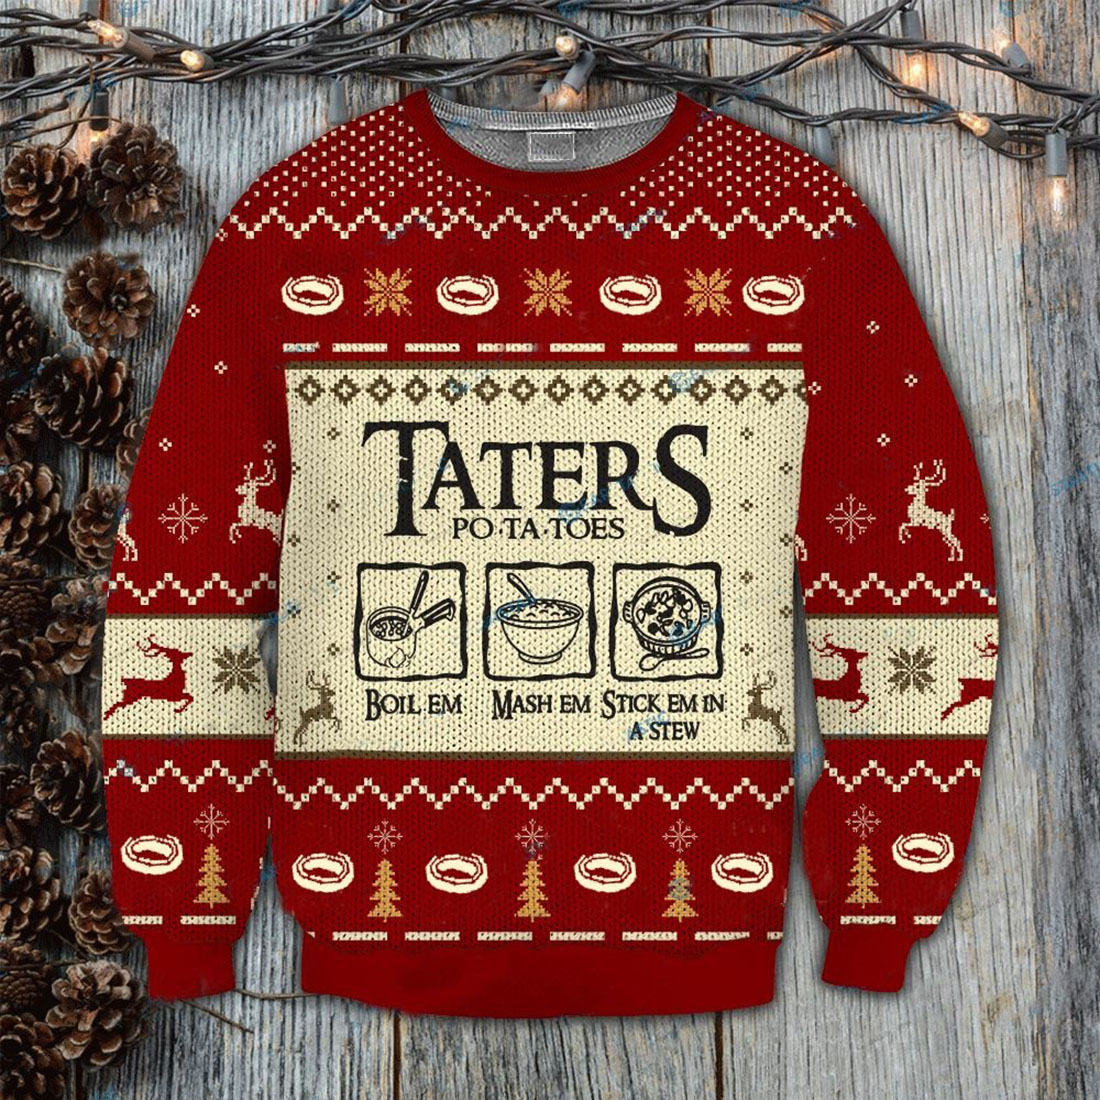 Lord-of-the-Rings-Taters-Potatoes-Sweater - 2